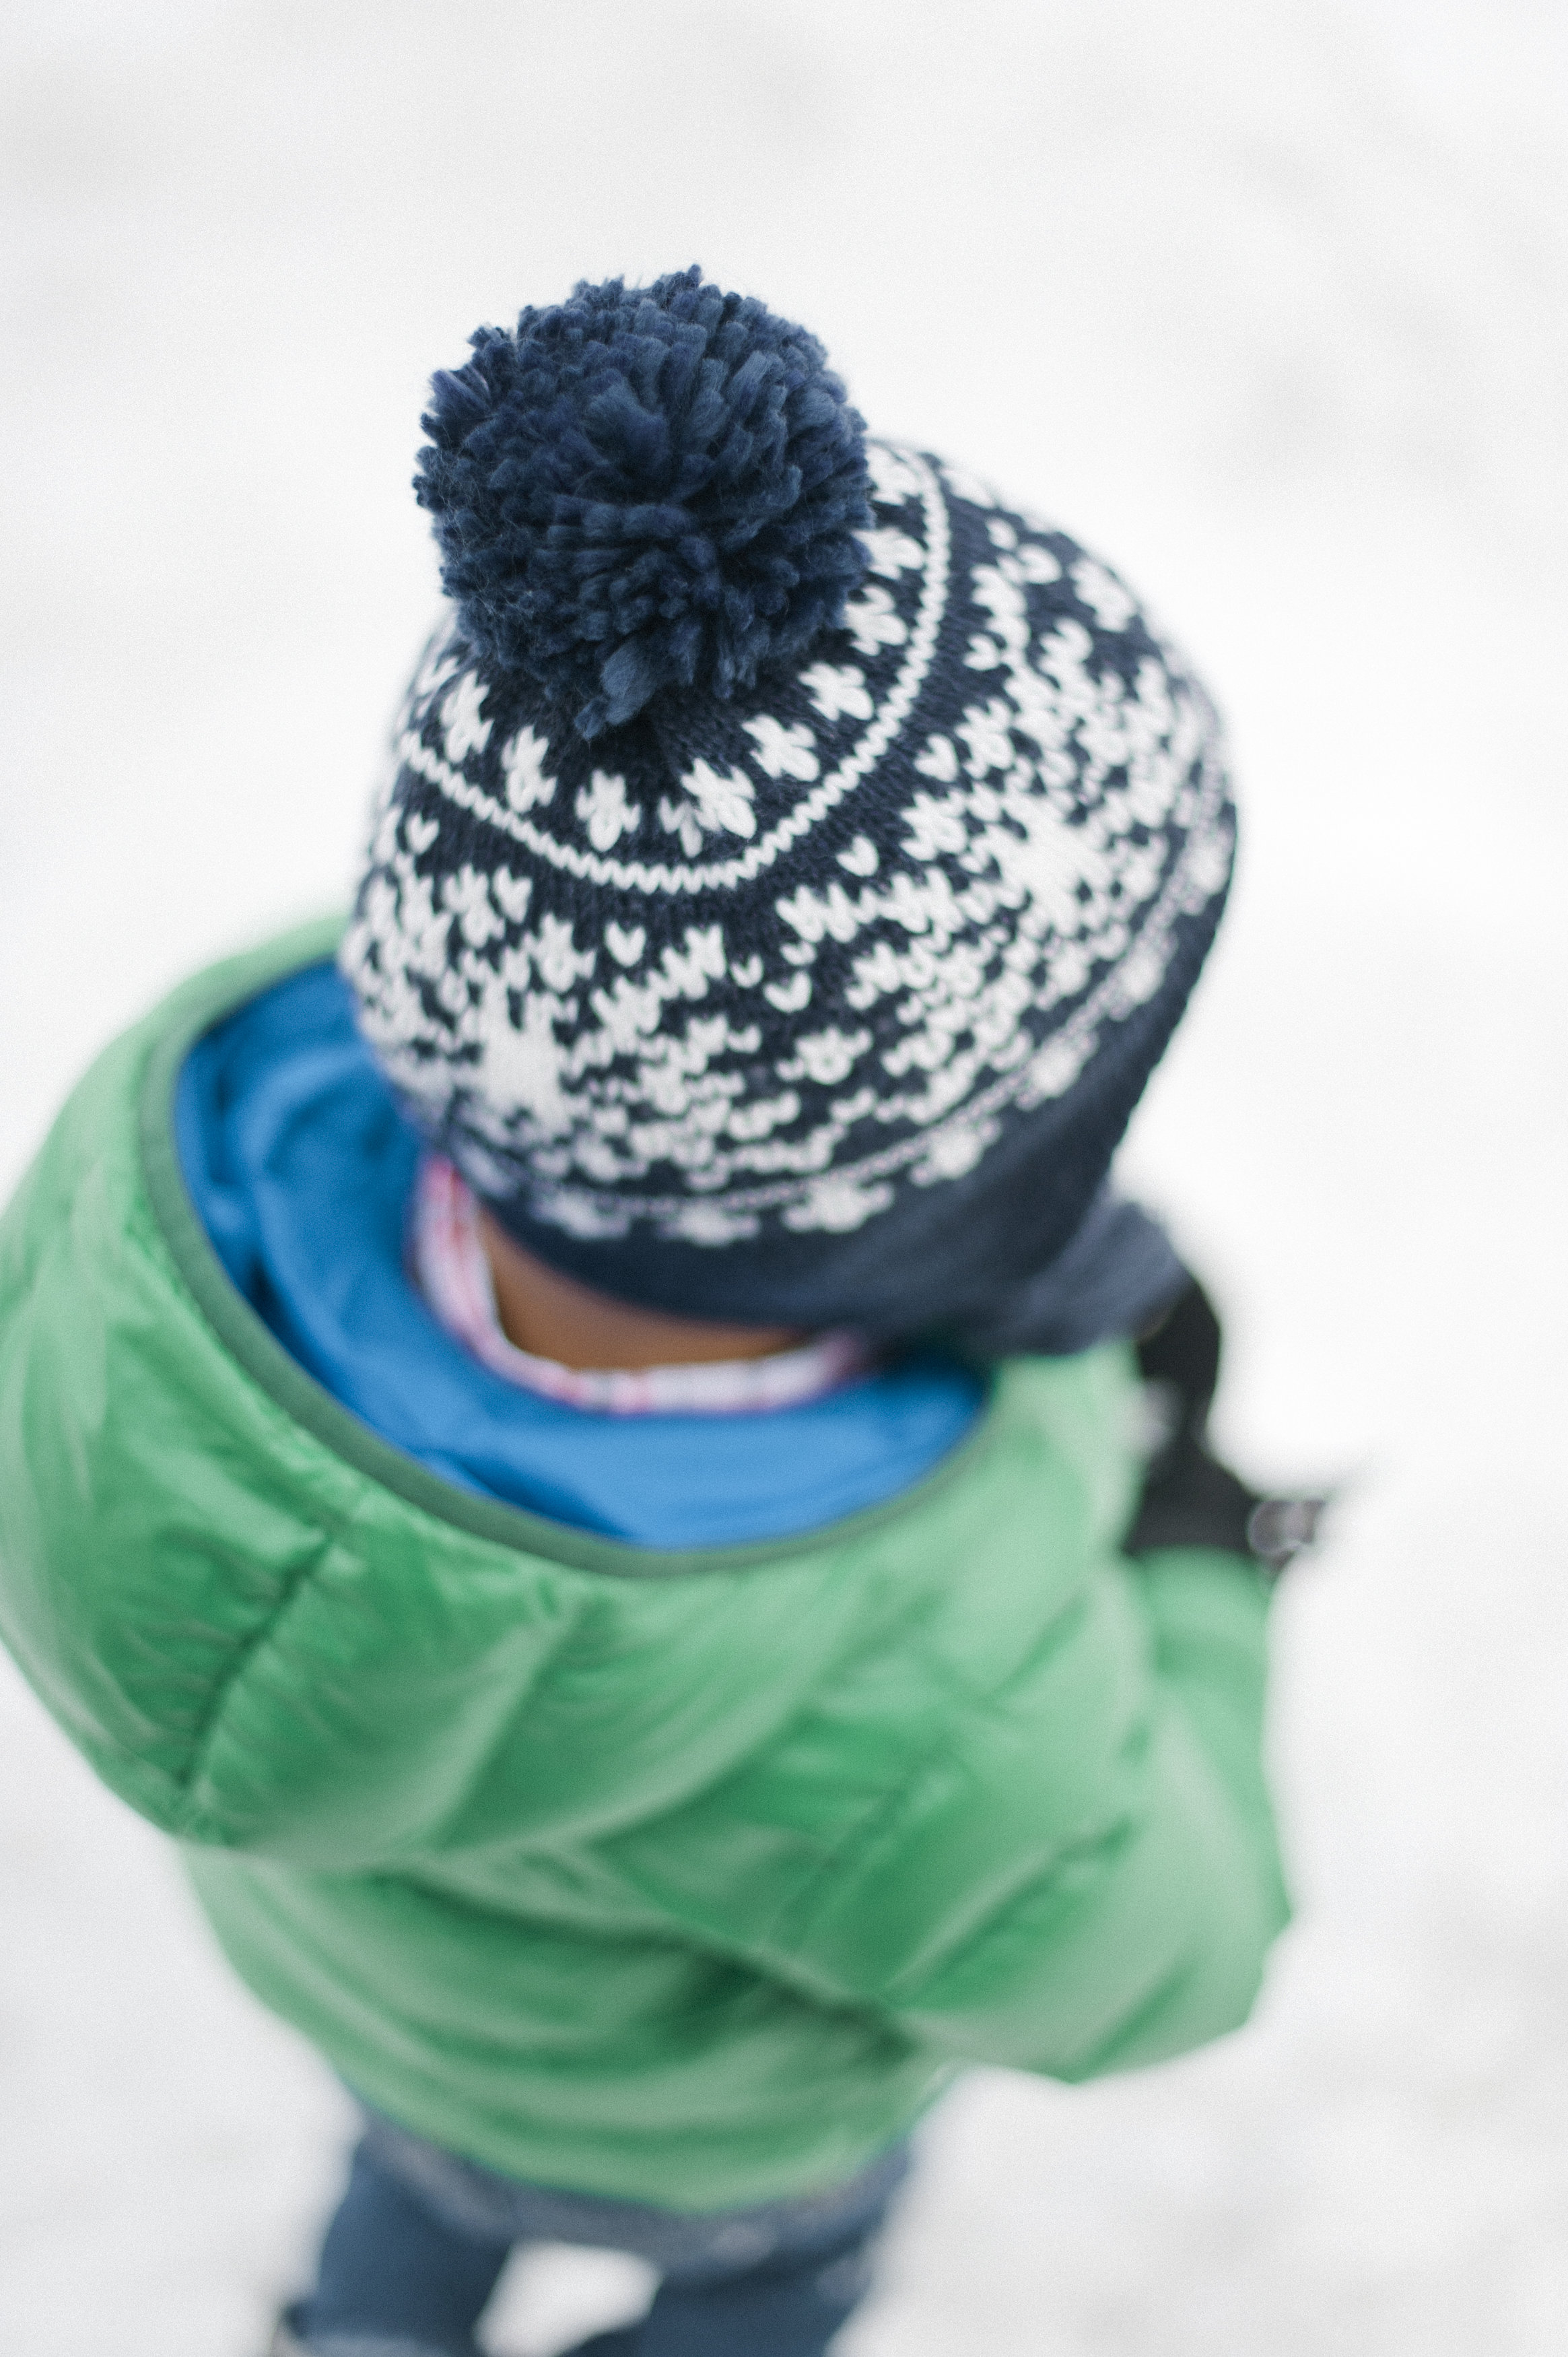 How to avoid losing kids winter gear